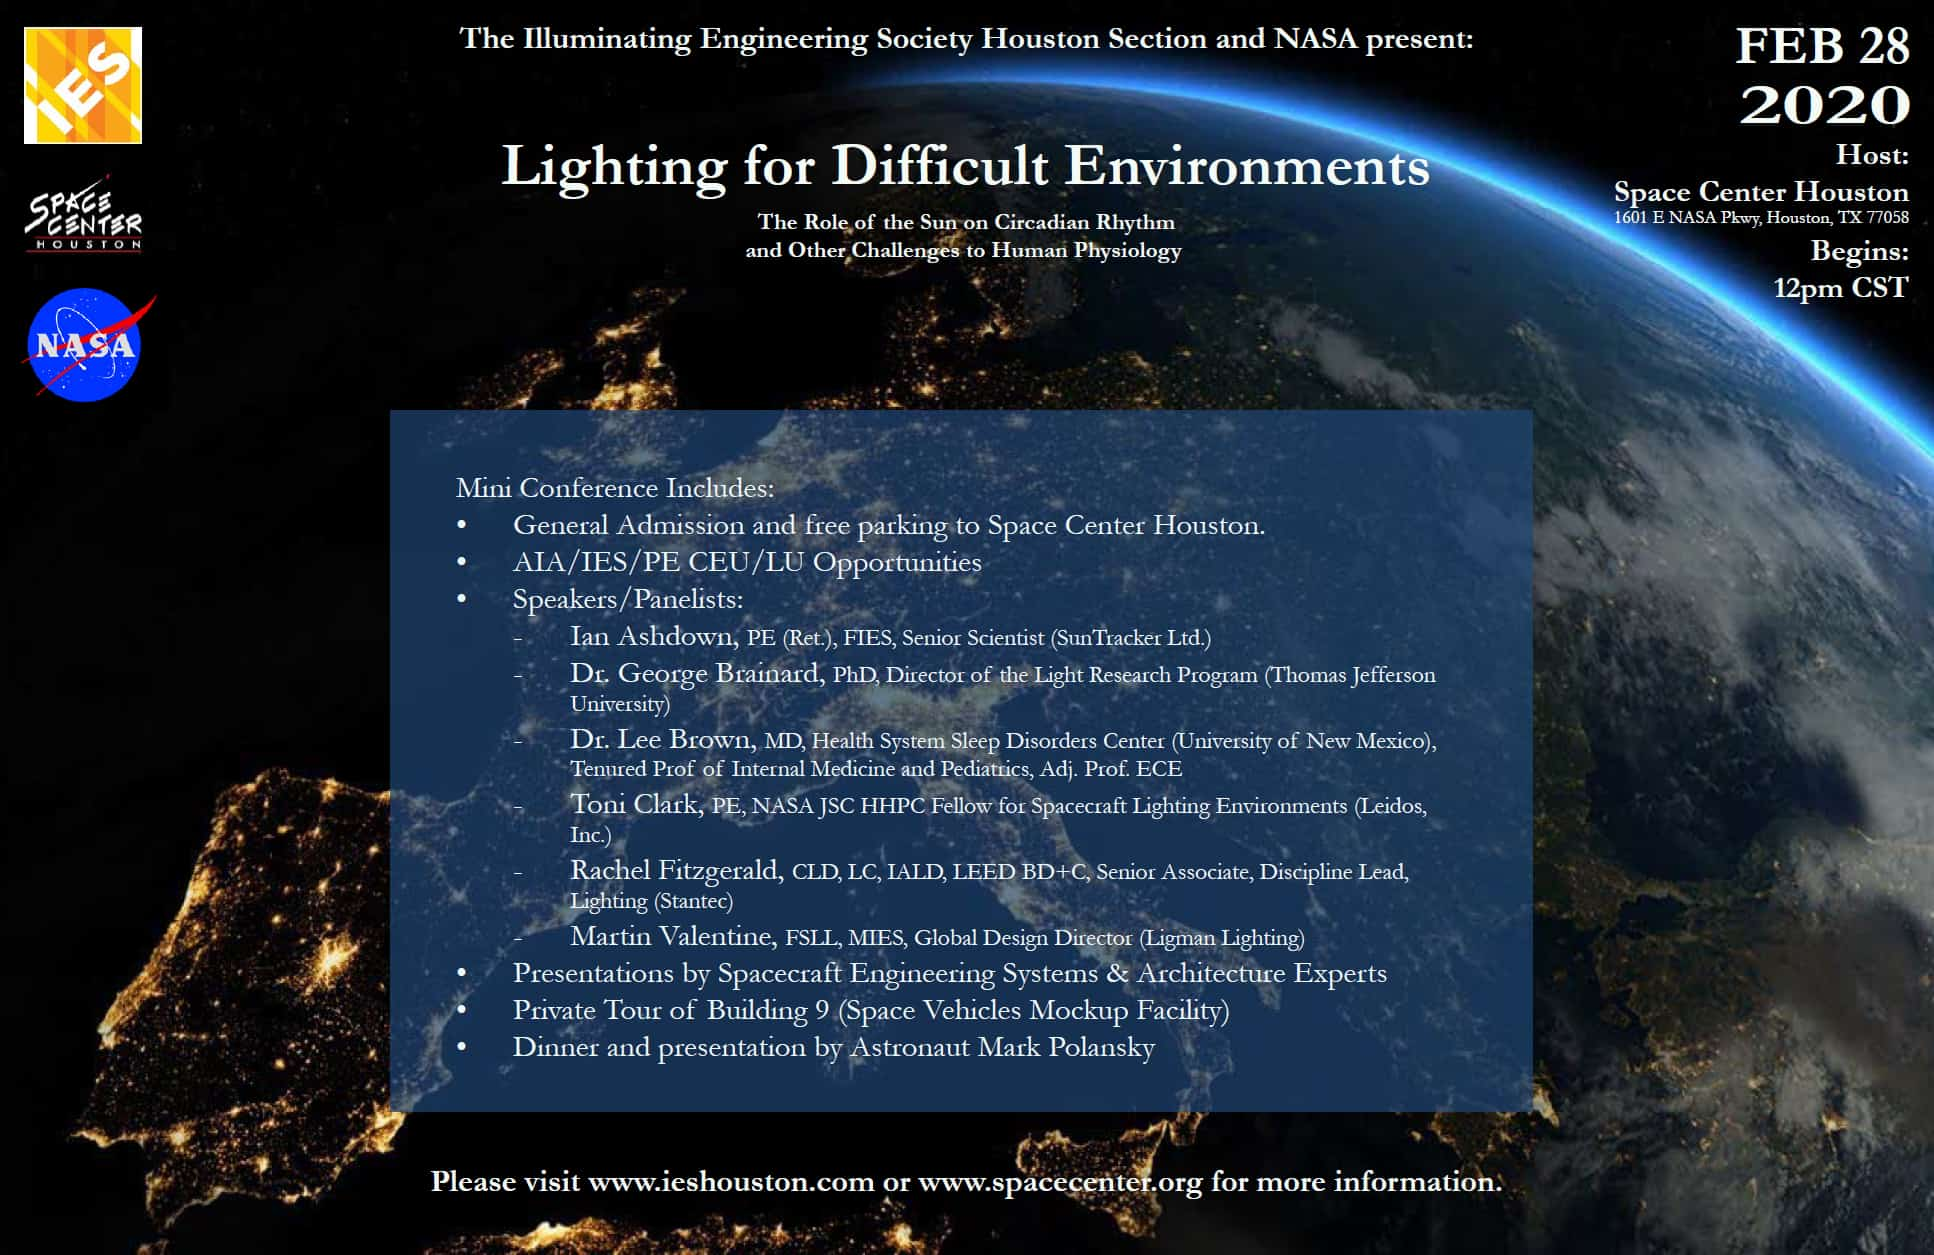 News: Lighting for Difficult Environments NASA Mini Conference